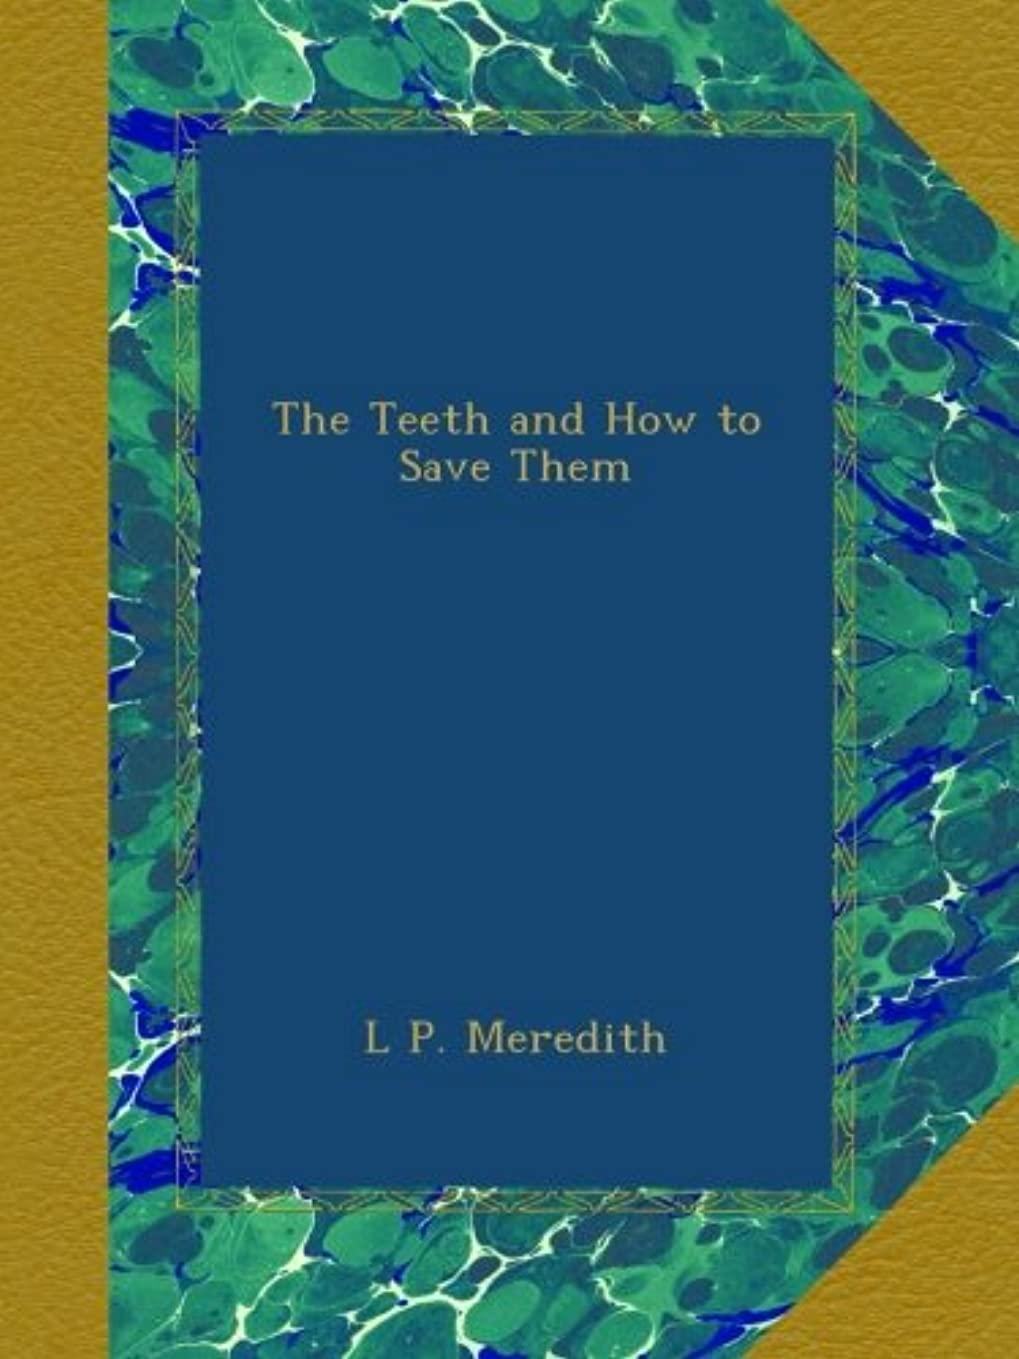 The Teeth and How to Save Them